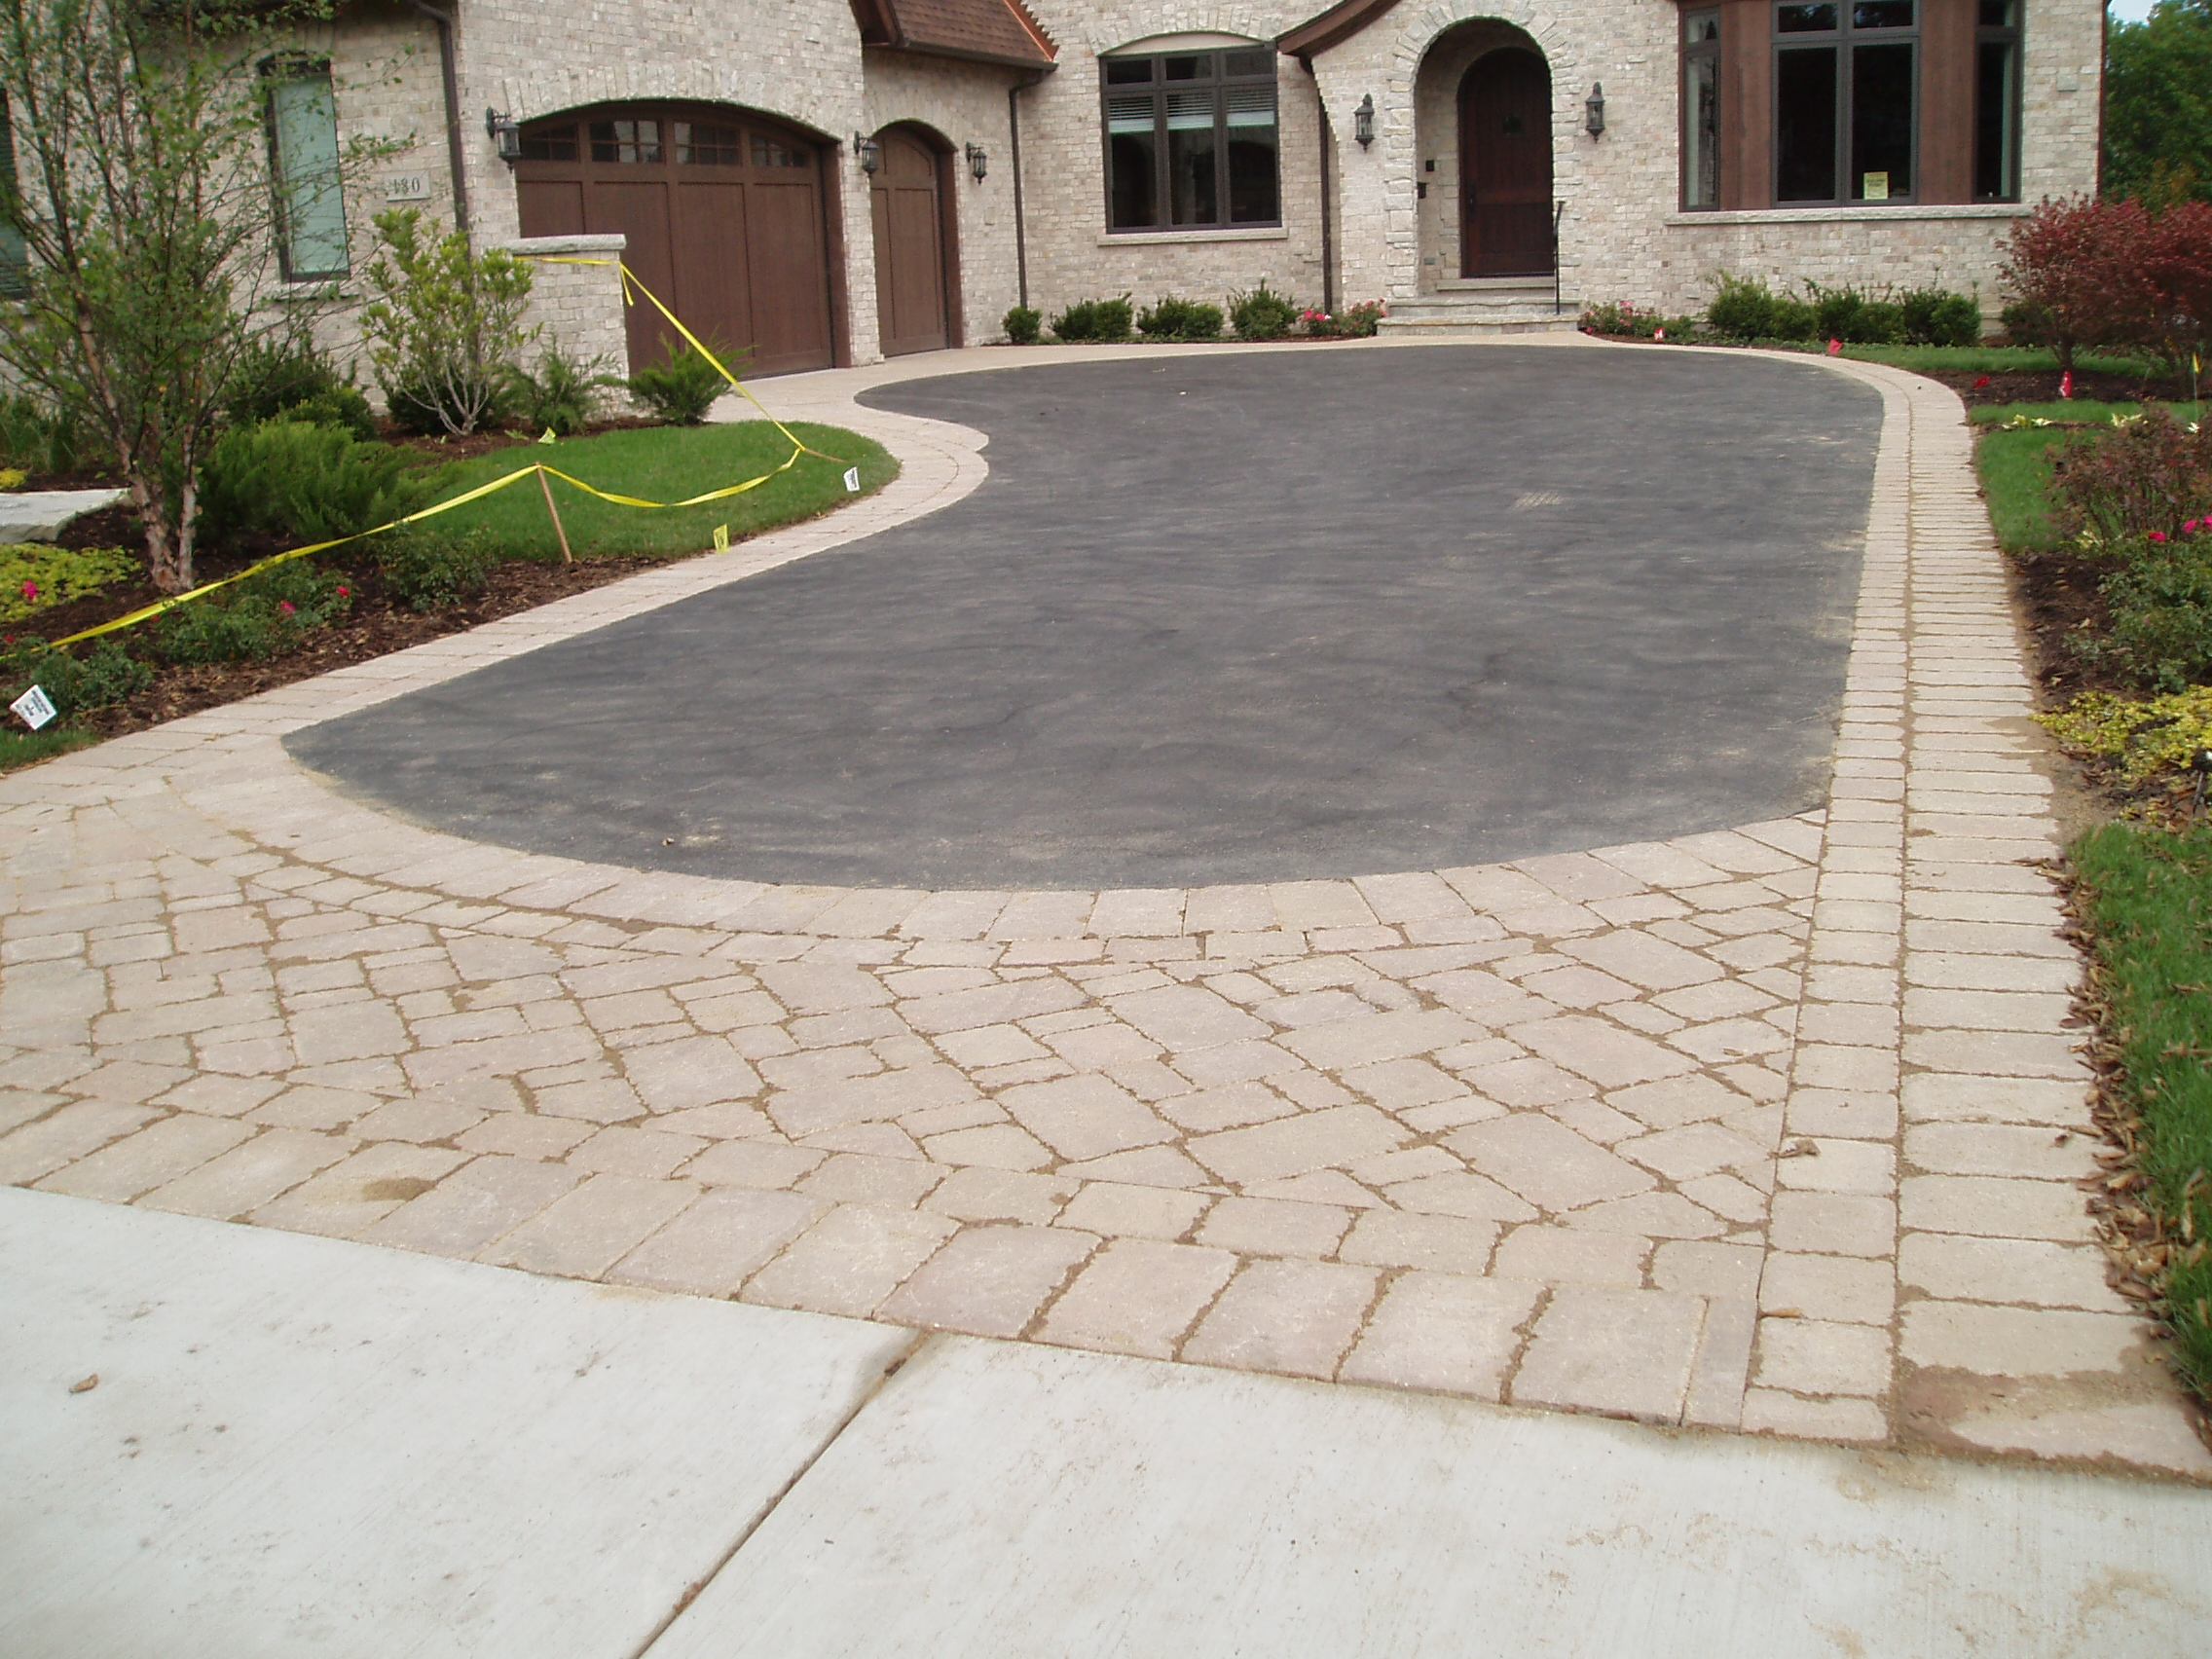 How the Unilock Financing Program Can Help Supply New Patio Pavers for Your Driveway Remodel in Highland Park, IL